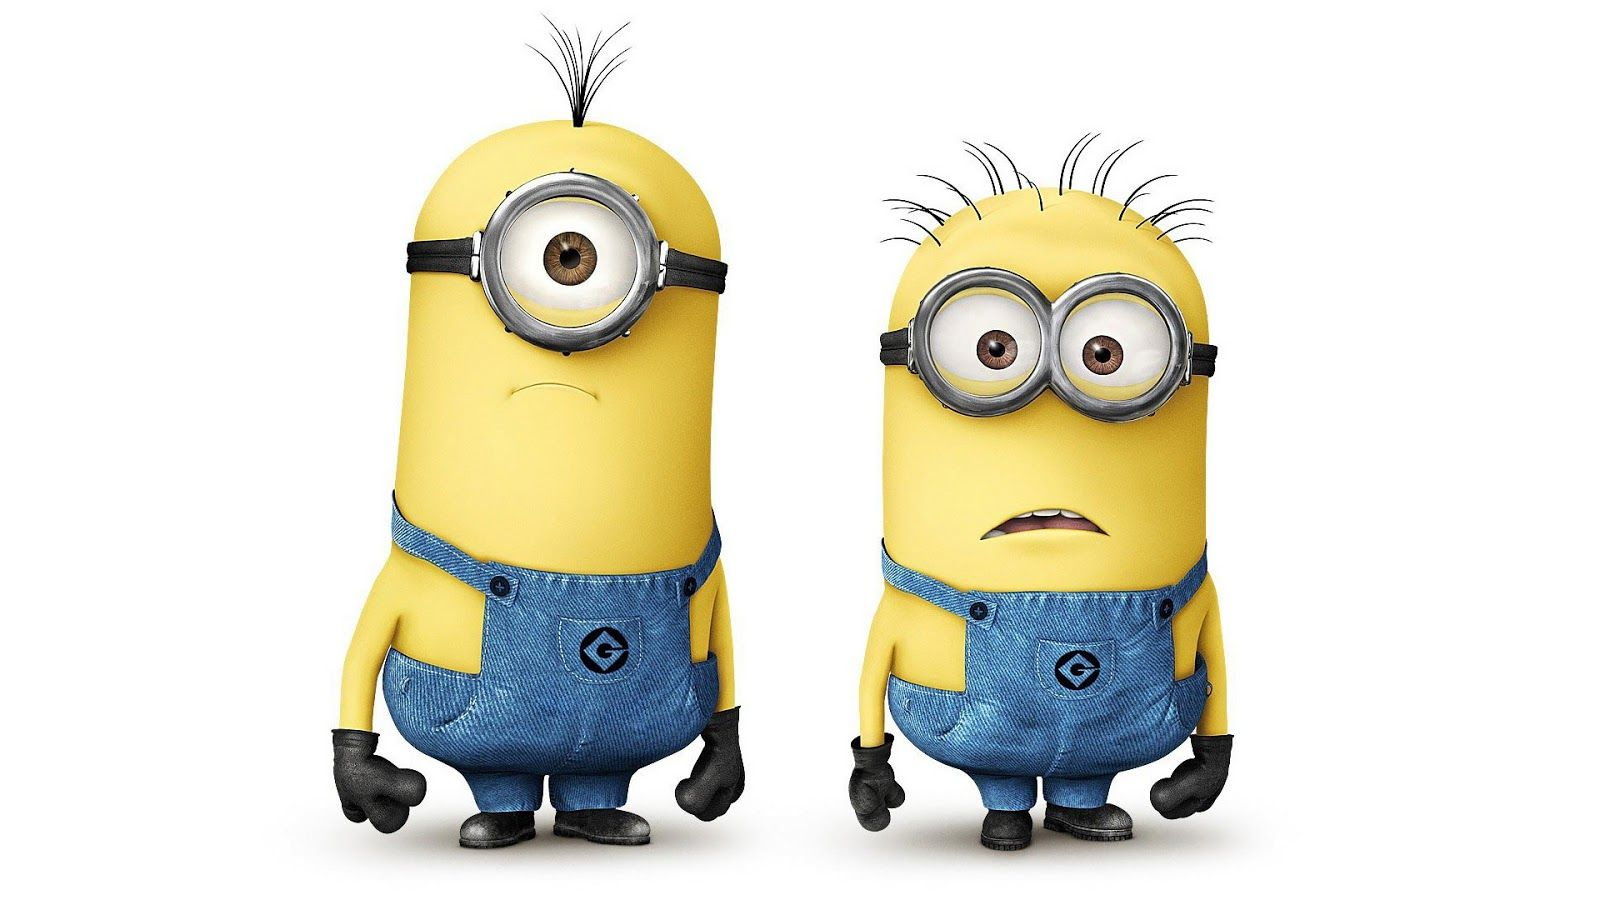 Superior Those Wacky Minions From Despicable Me And Despicable Me 2 Are Back In  Their Very Own Movie. The Movie Stars Minions Stuart, Kevin And Bob In  Search Of A N